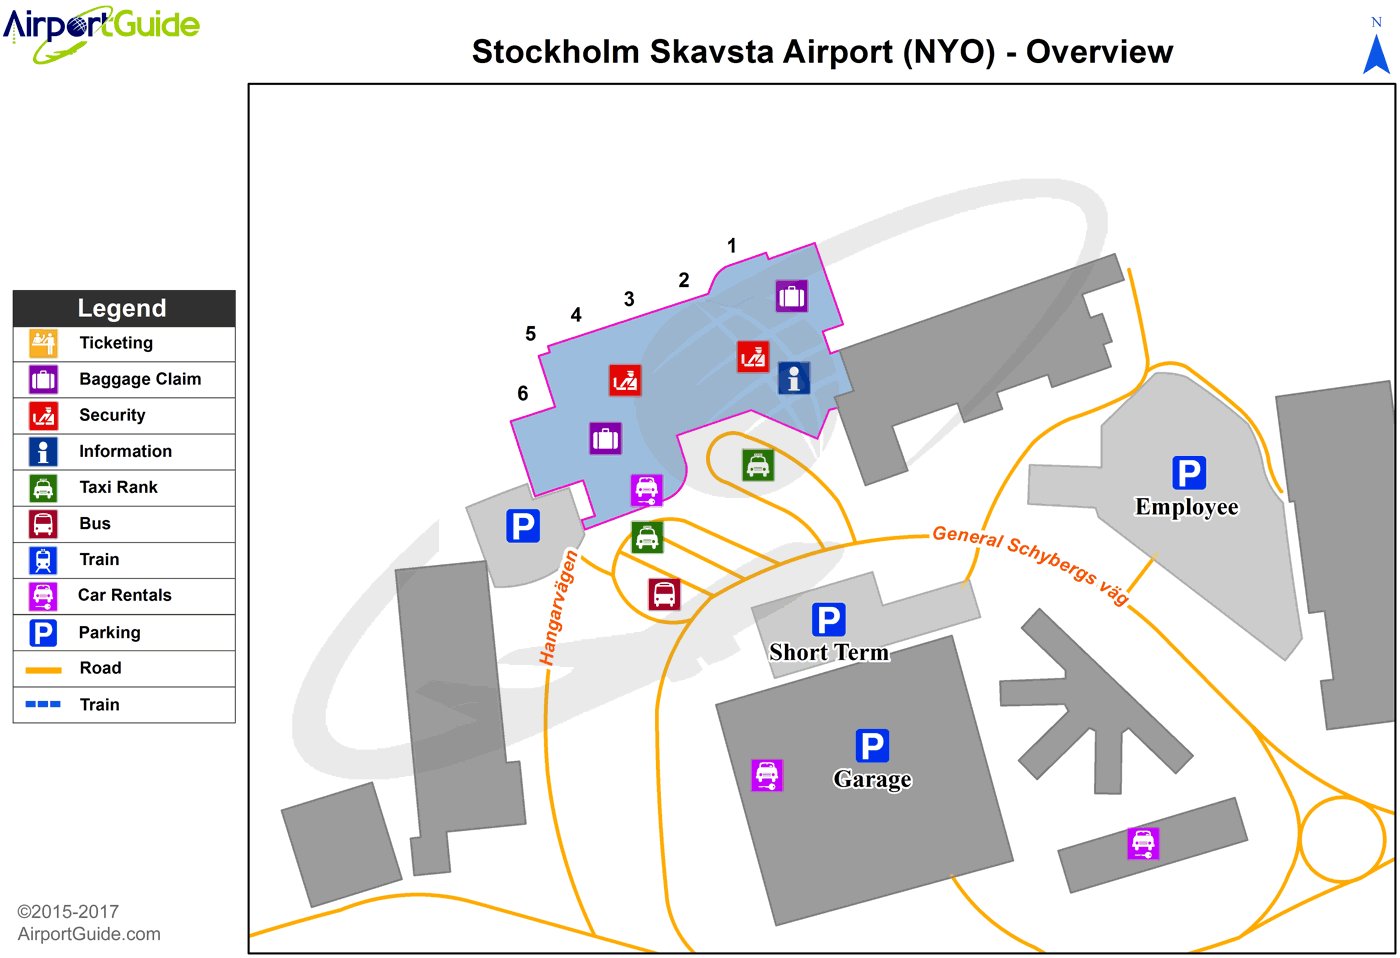 Stockholm / Nyköping - Stockholm Skavsta (NYO) Airport Terminal Map - Overview